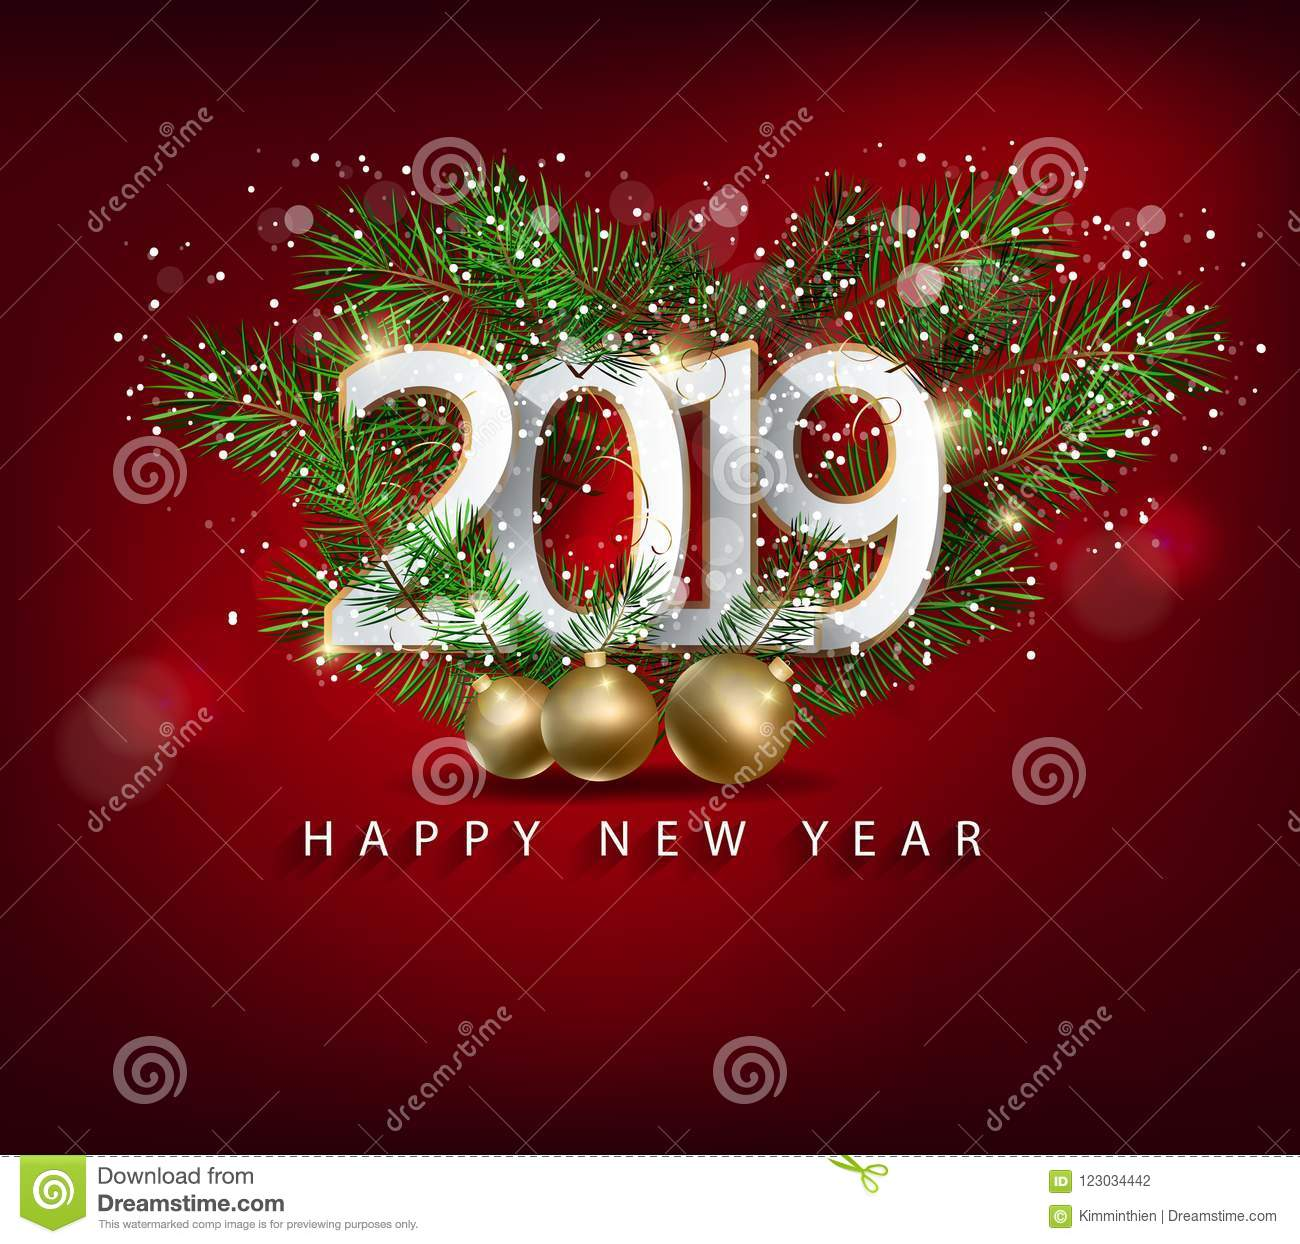 Merry Christmas Images 2019.Happy New Year 2019 And Merry Christmas Stock Vector